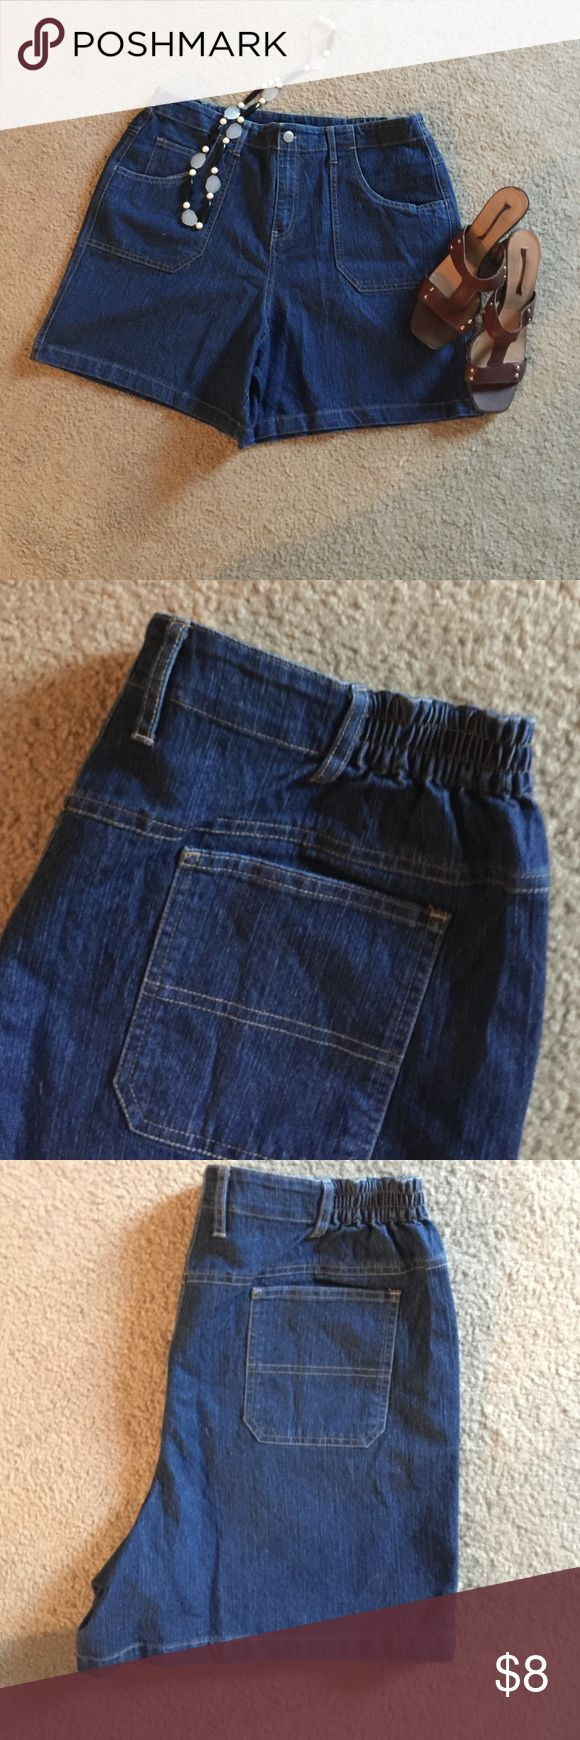 Architect:  Perfect jeans shorts w/elastic waist! Architect: For anyone looking for style and comfort, these are the shorts for you.  Dark denim with two elastic bands at the back sides, wear these shorts for those hot summer days! Architect  Shorts Jean Shorts